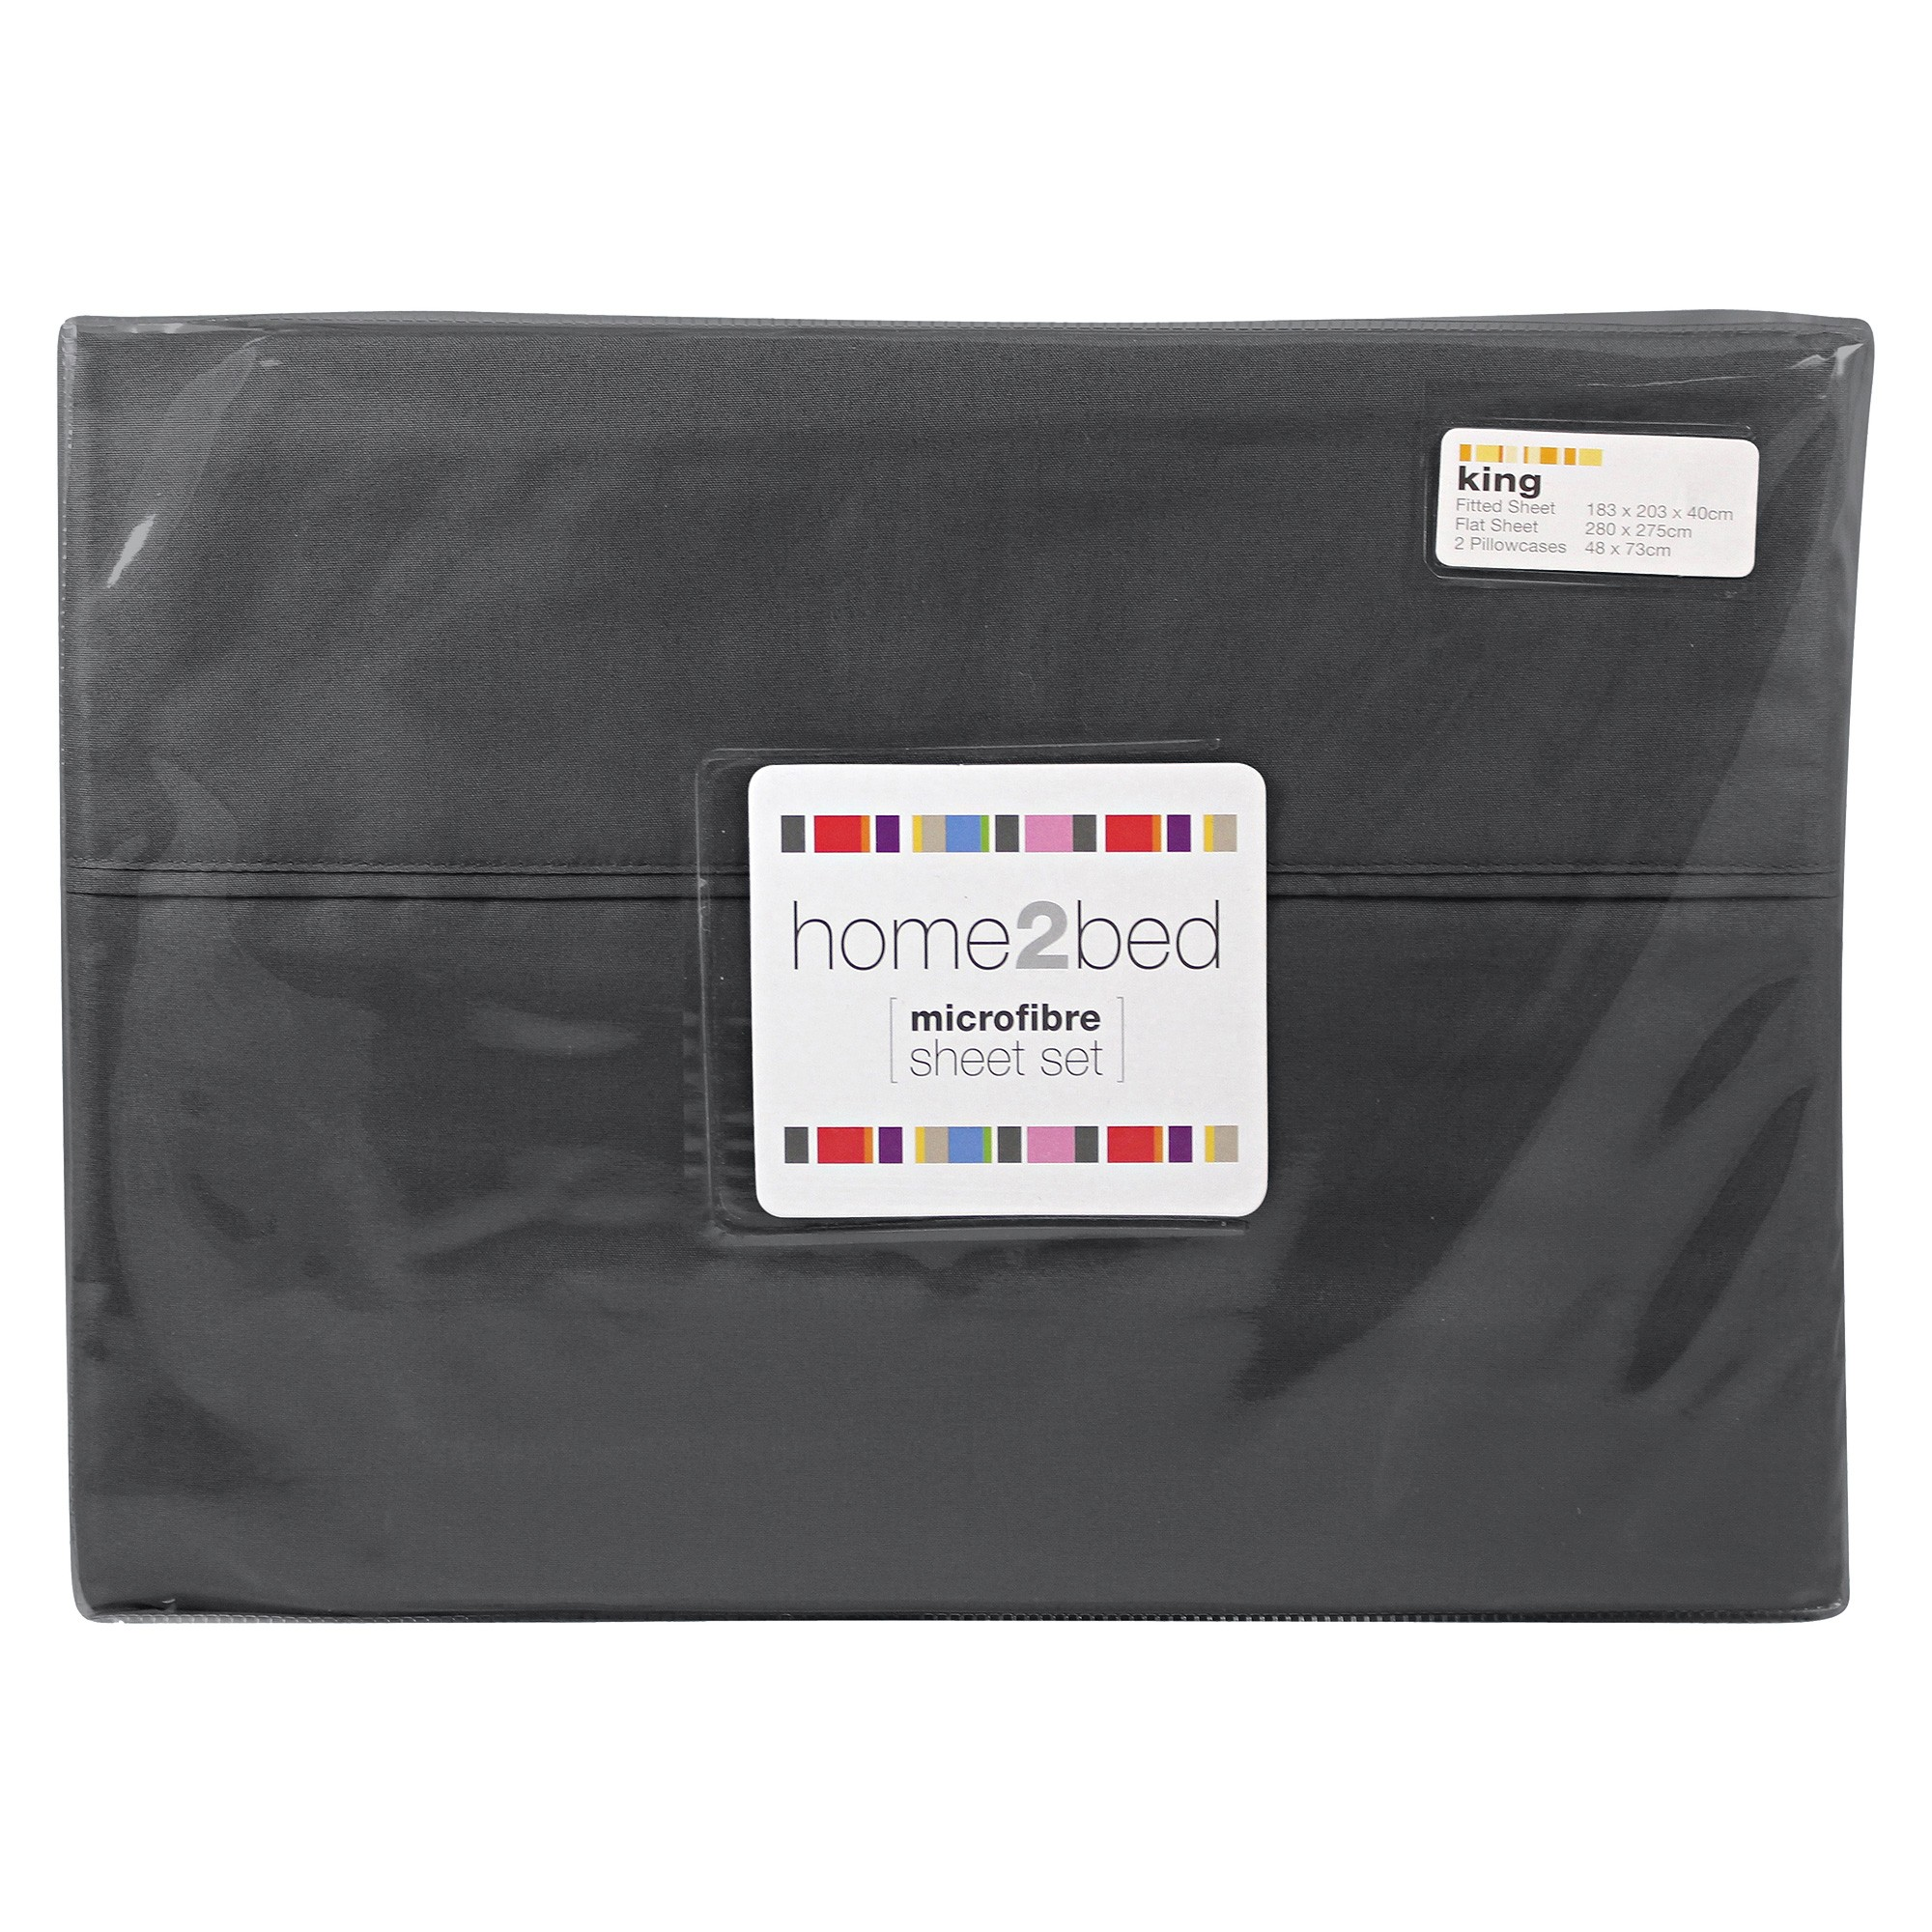 Home2Bed Microfibre Sheet Set, King, Charcoal